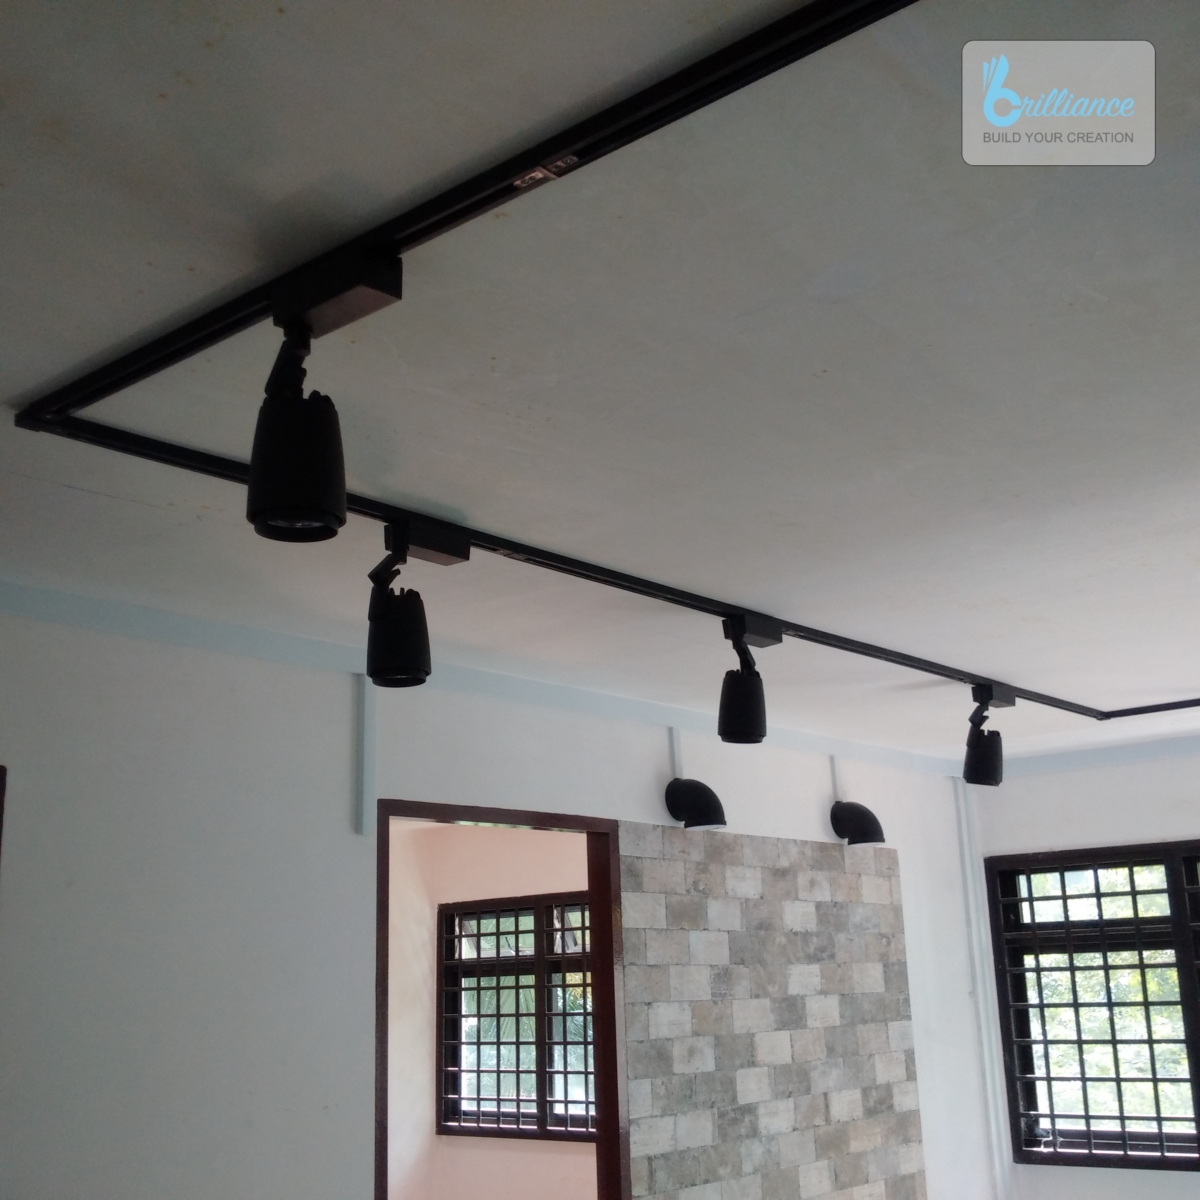 HDB renovation at Ghim Moh - Track light